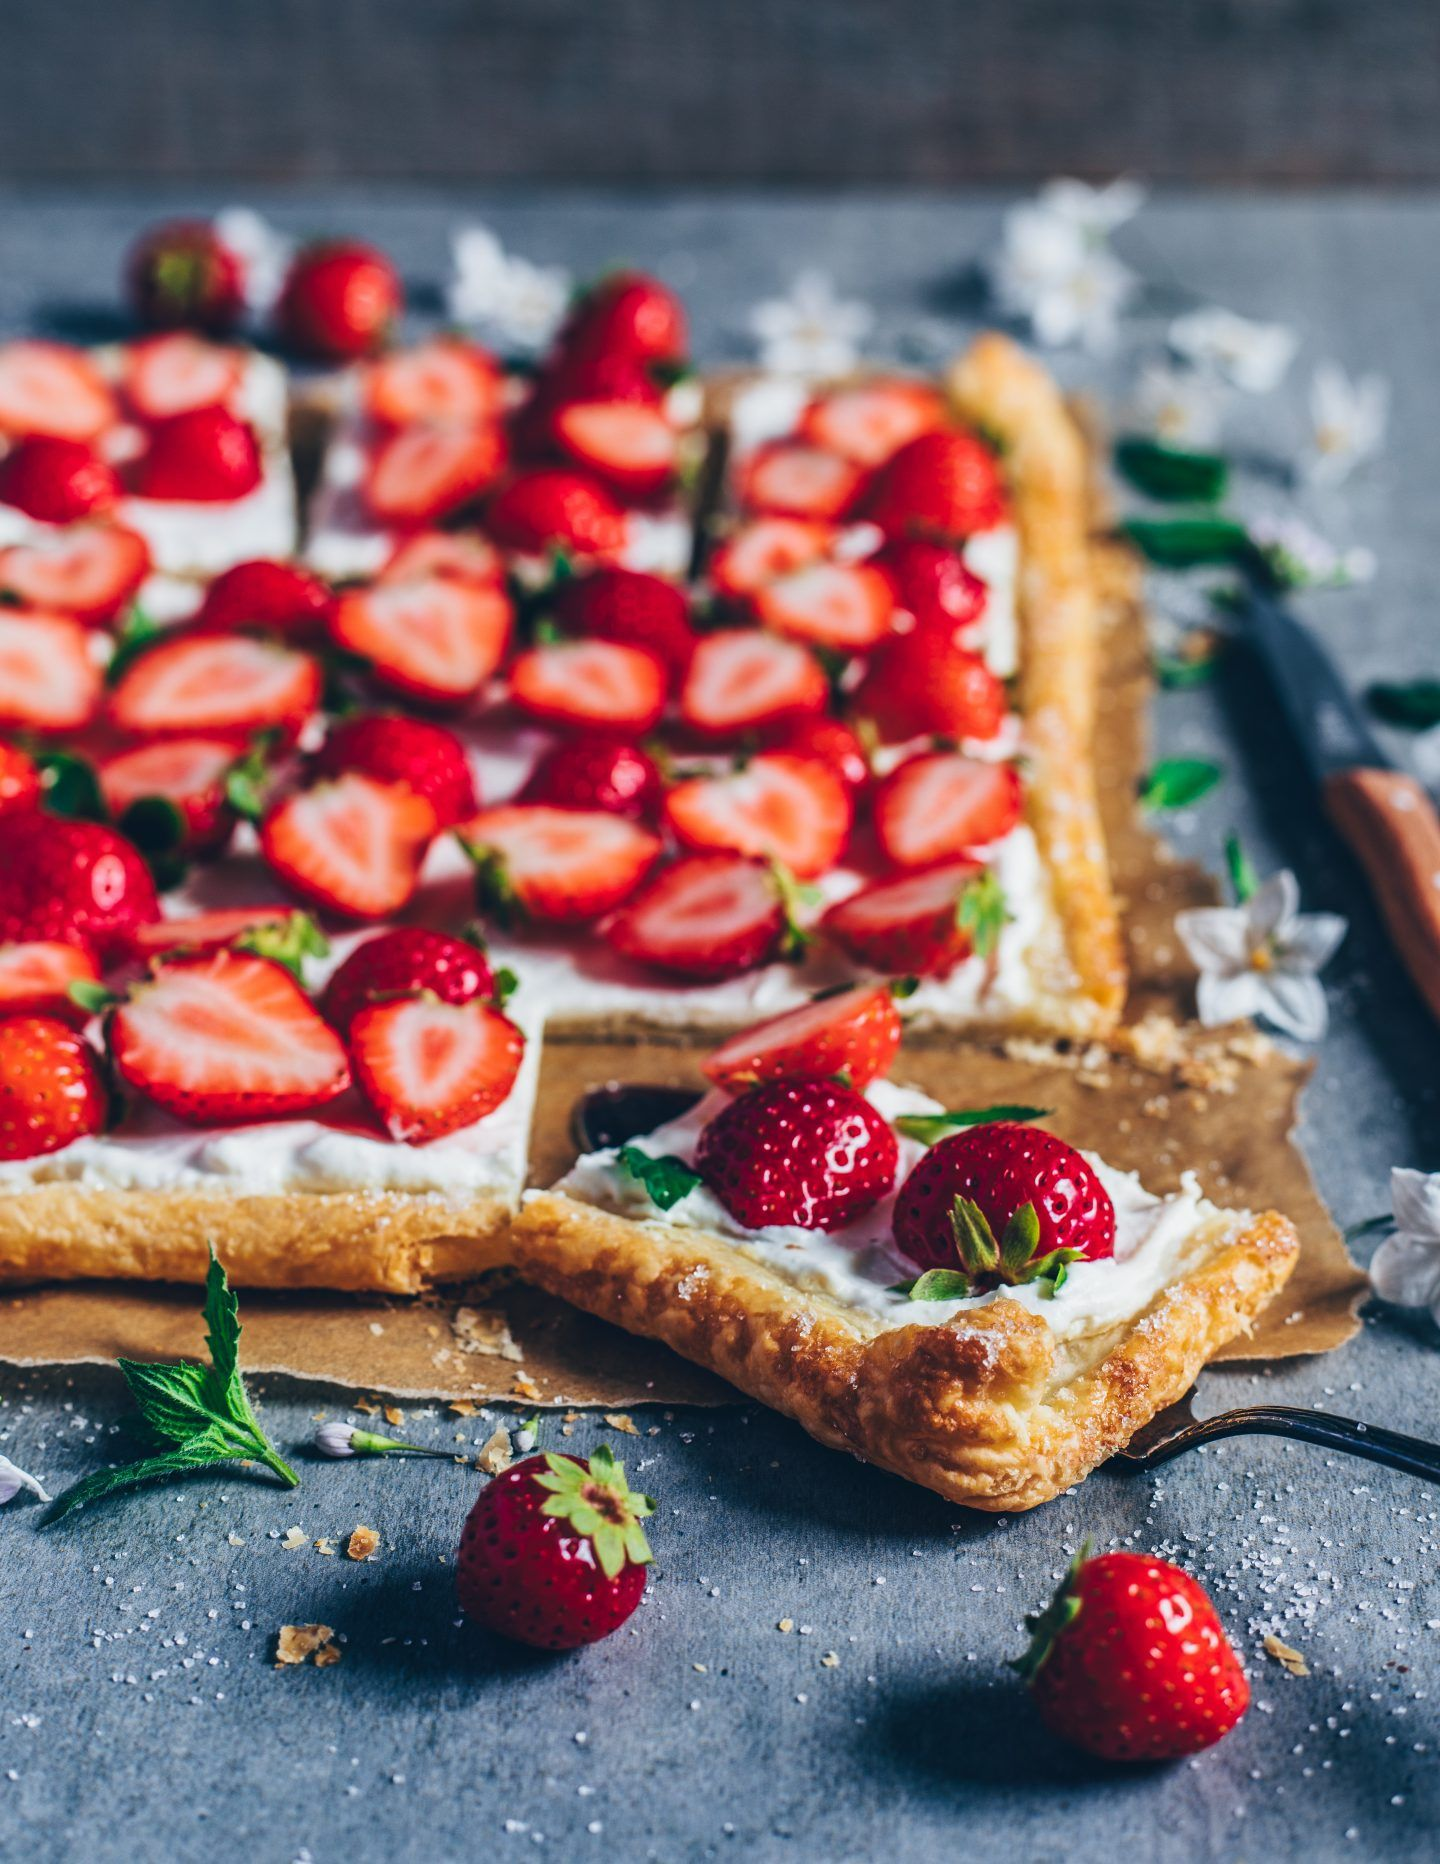 Vegan Strawberry Cream Puff Pastry Tart - Bianca Zapatka | Recipes